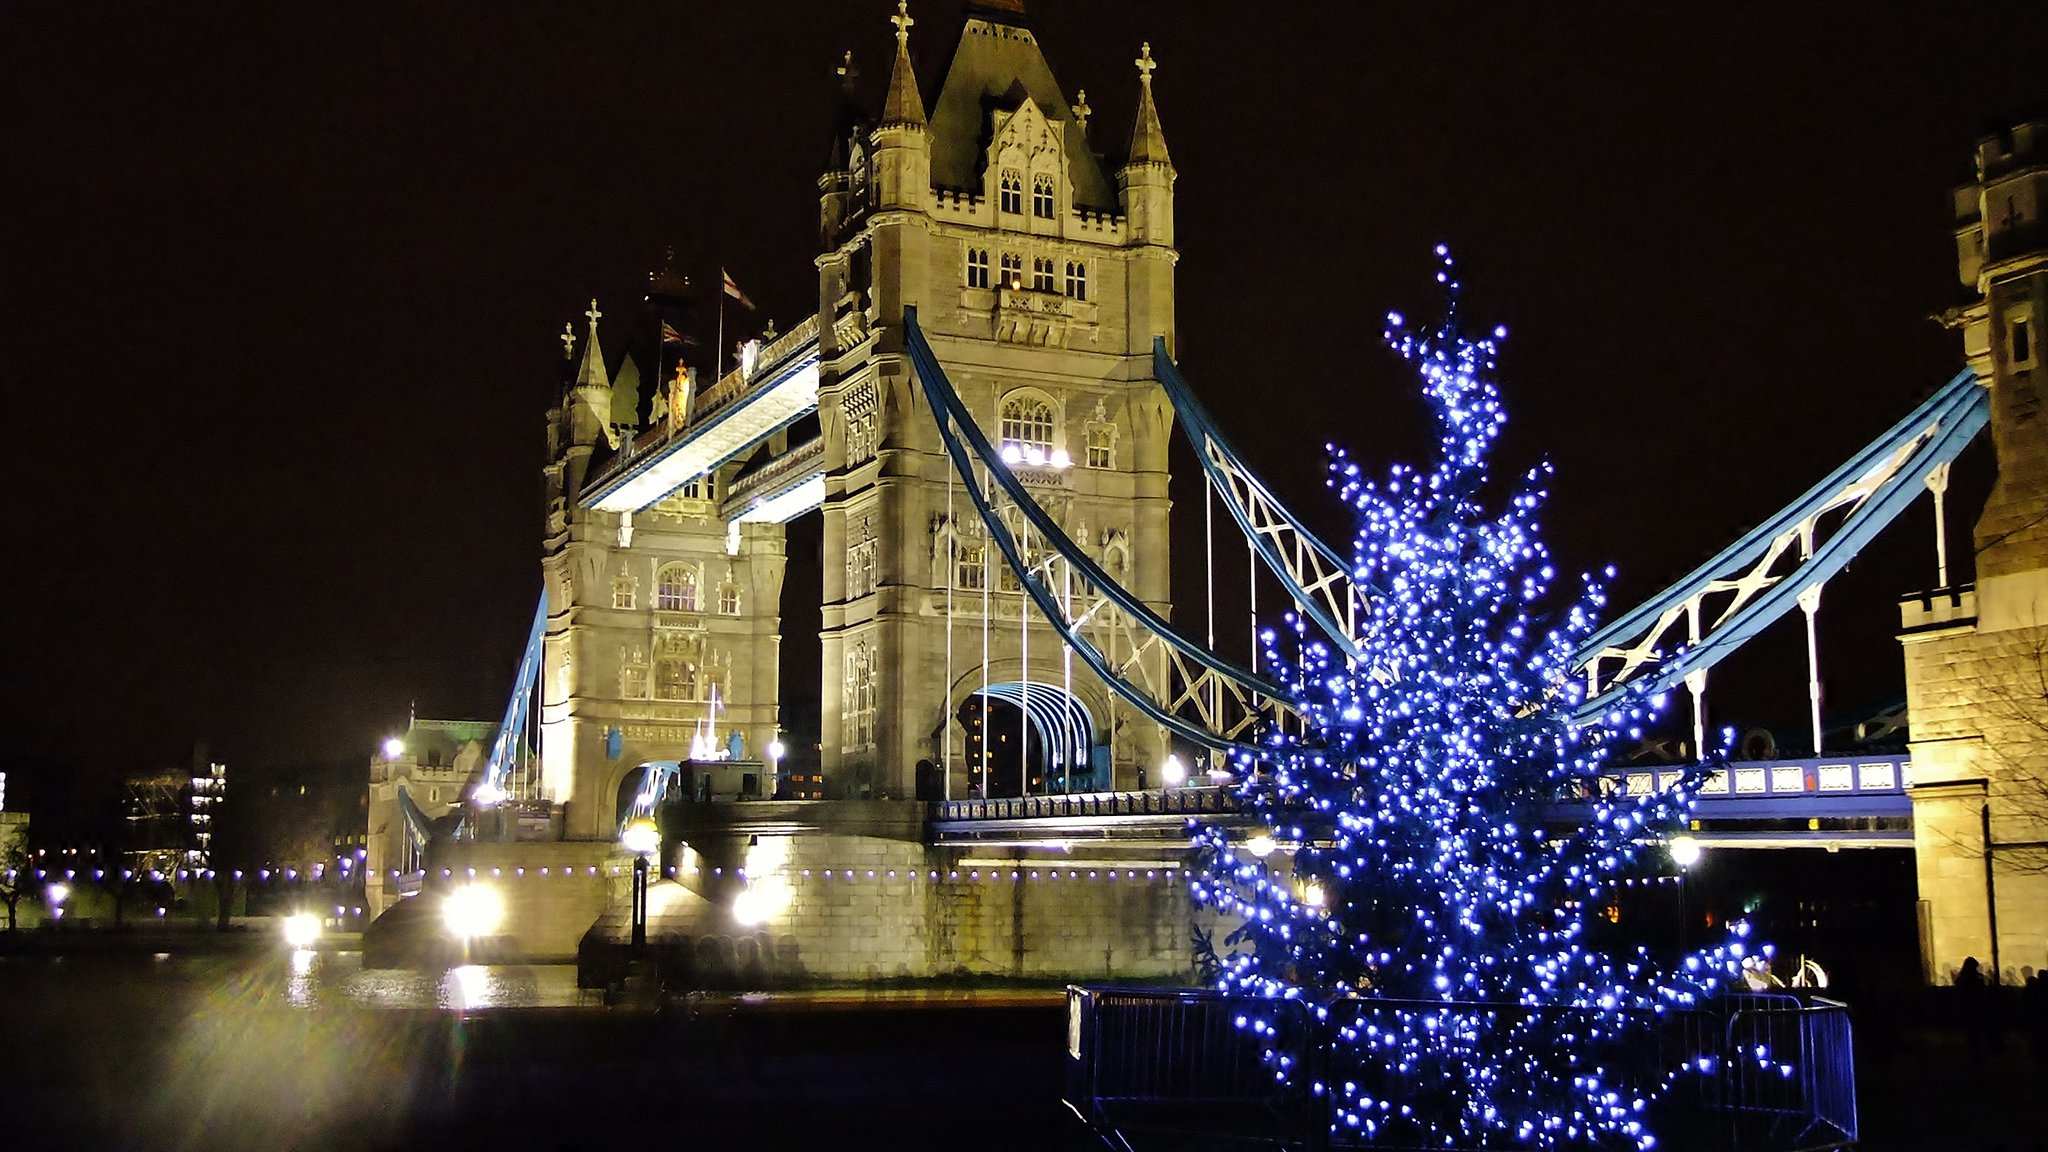 Christmas In Europe Wallpaper.Teach Your Children About Giving This Christmas The London